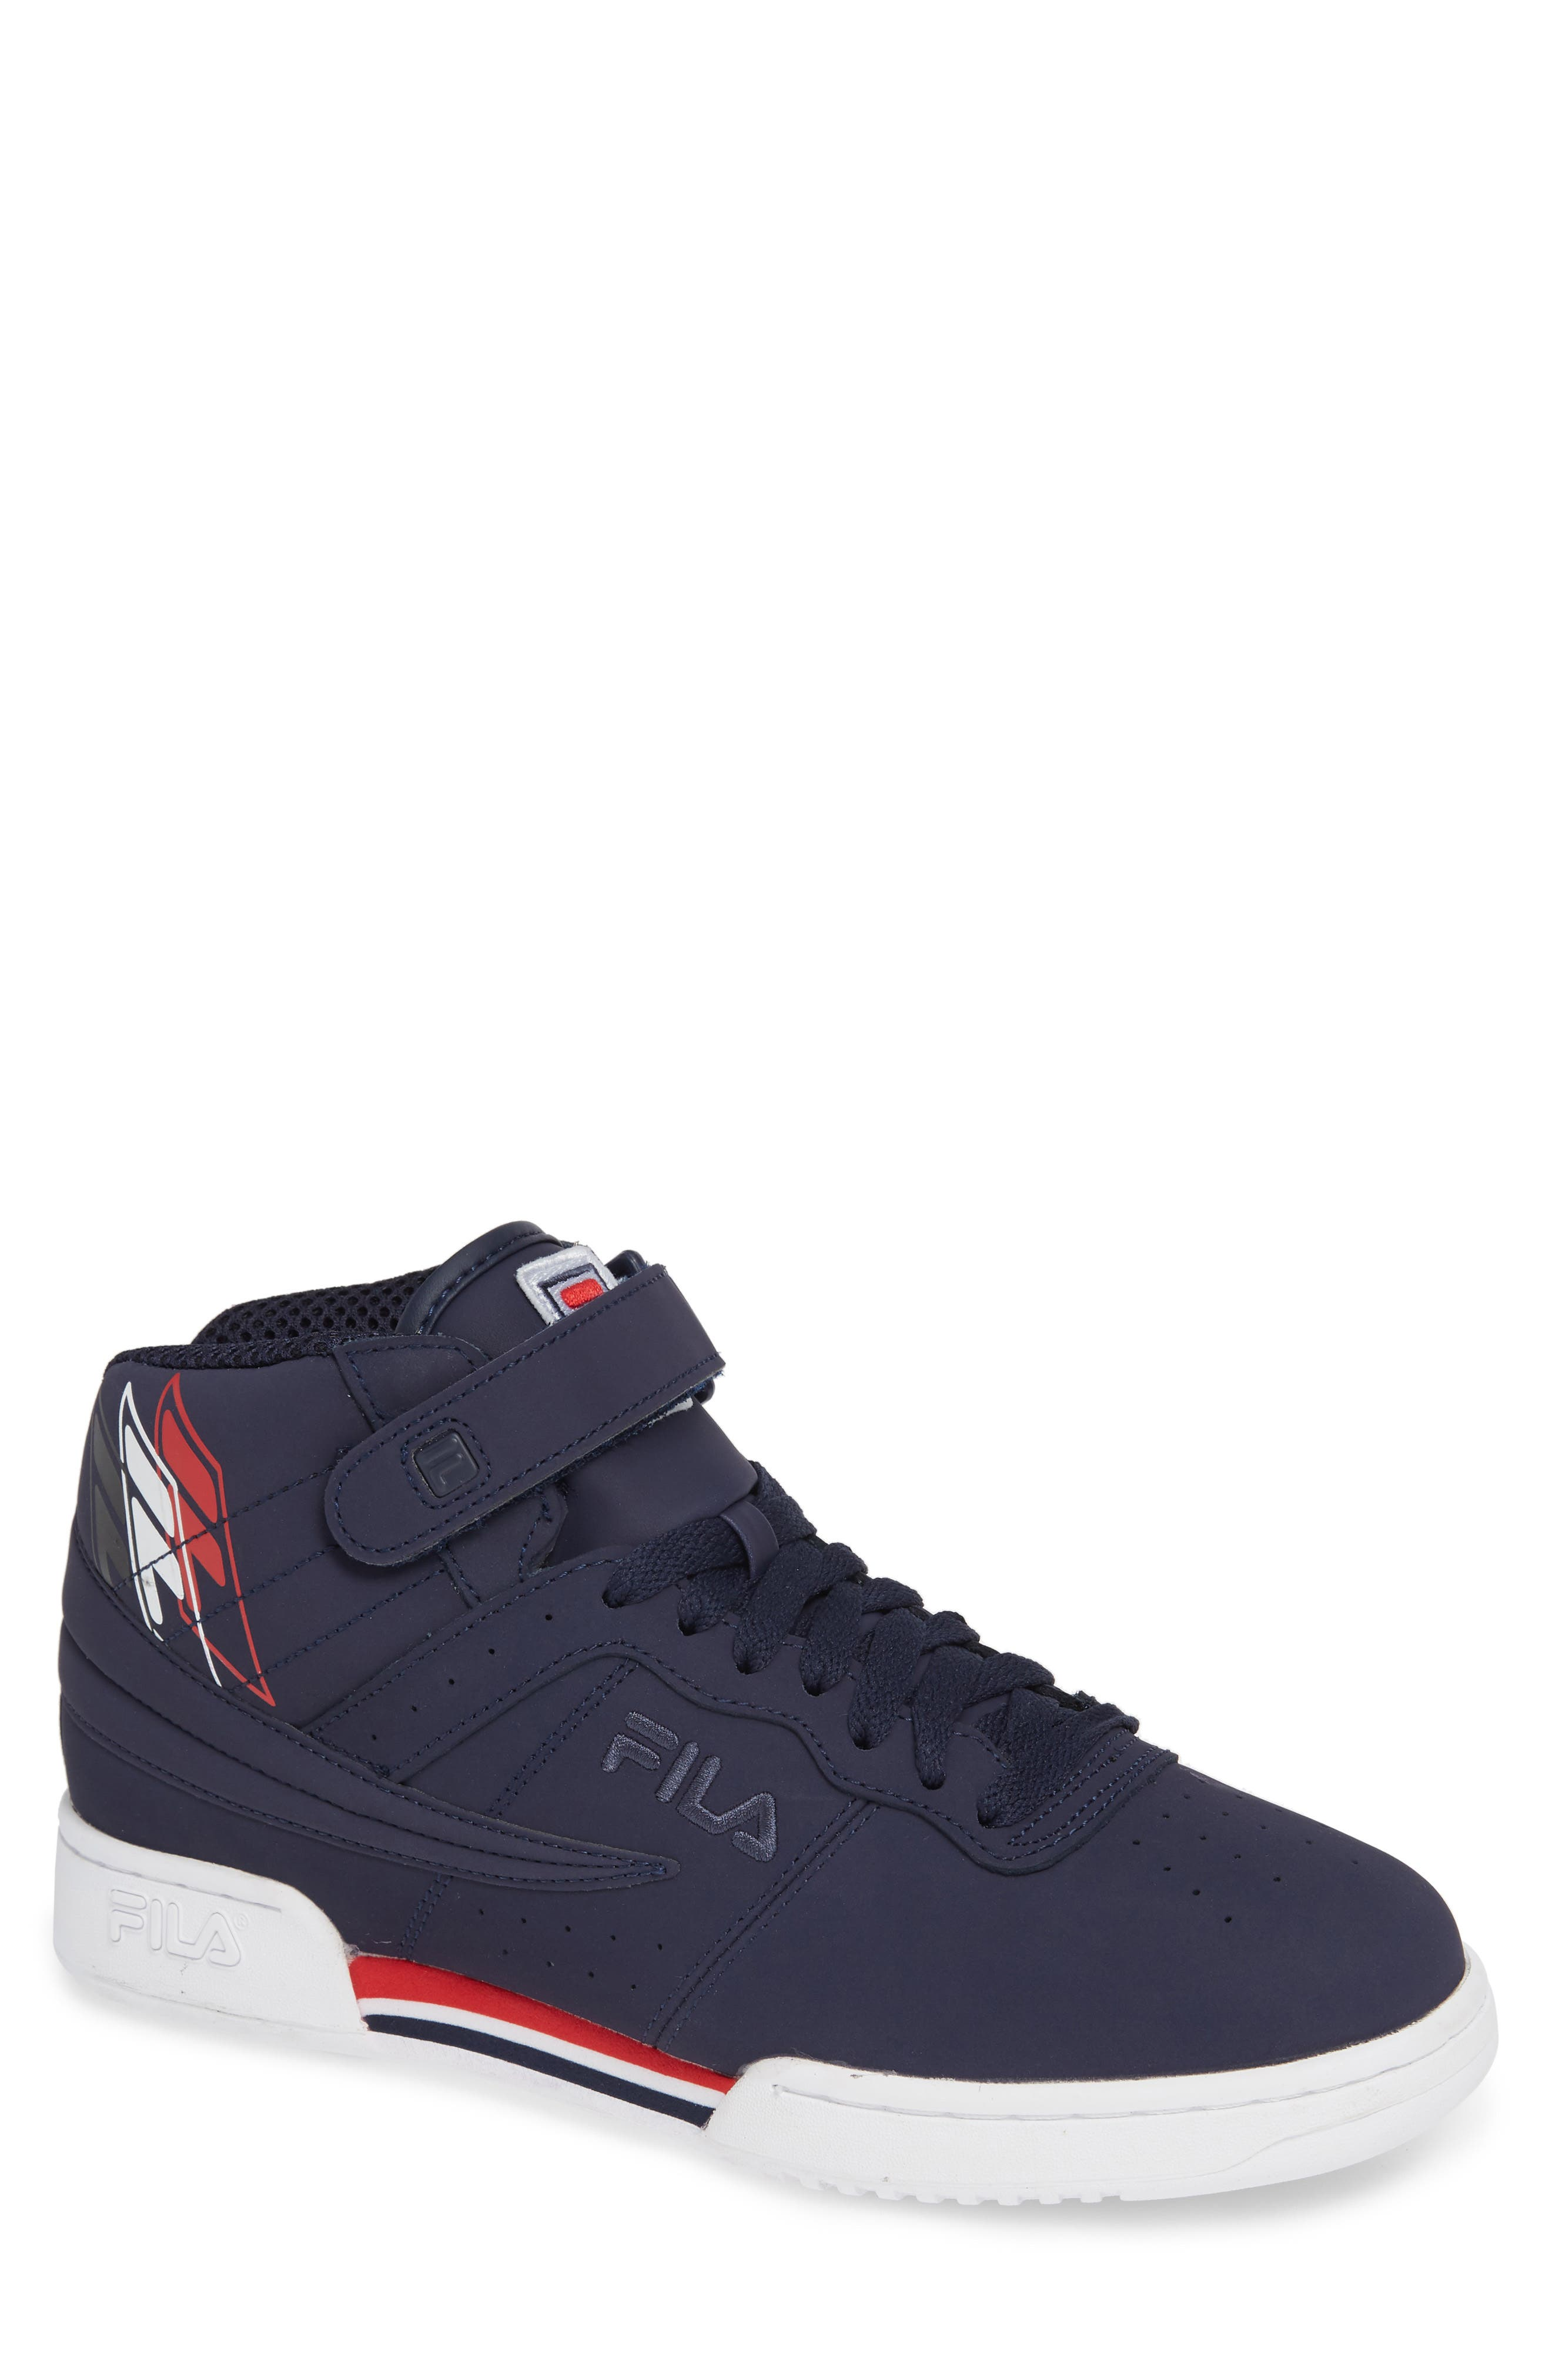 F-13 F-Box Sneaker,                         Main,                         color, NAVY/ WHITE/ RED